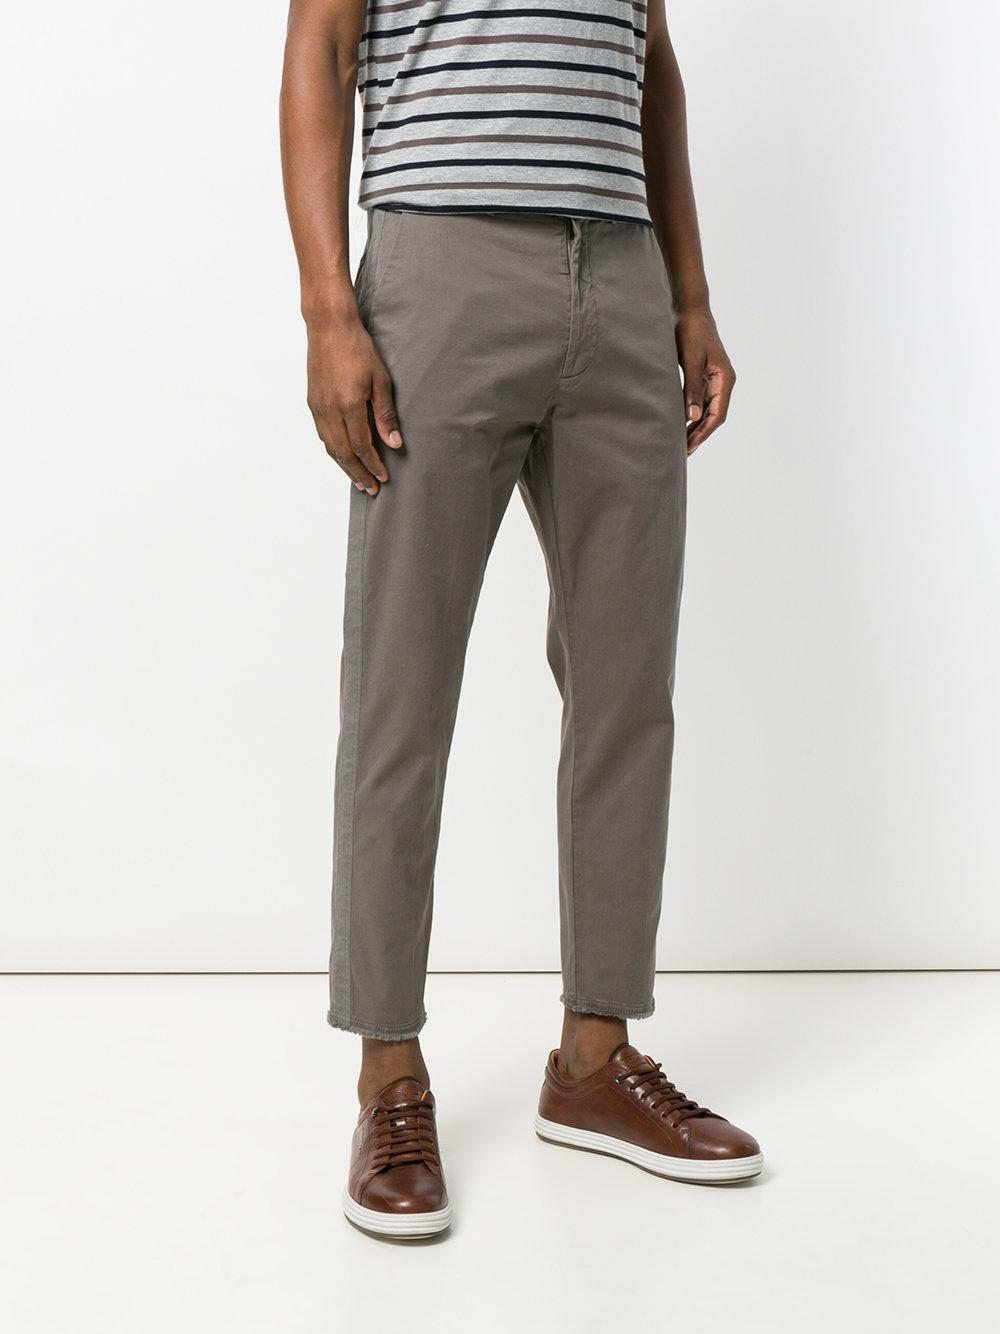 Pence Cotton Cropped Trousers in Grey (Grey) for Men